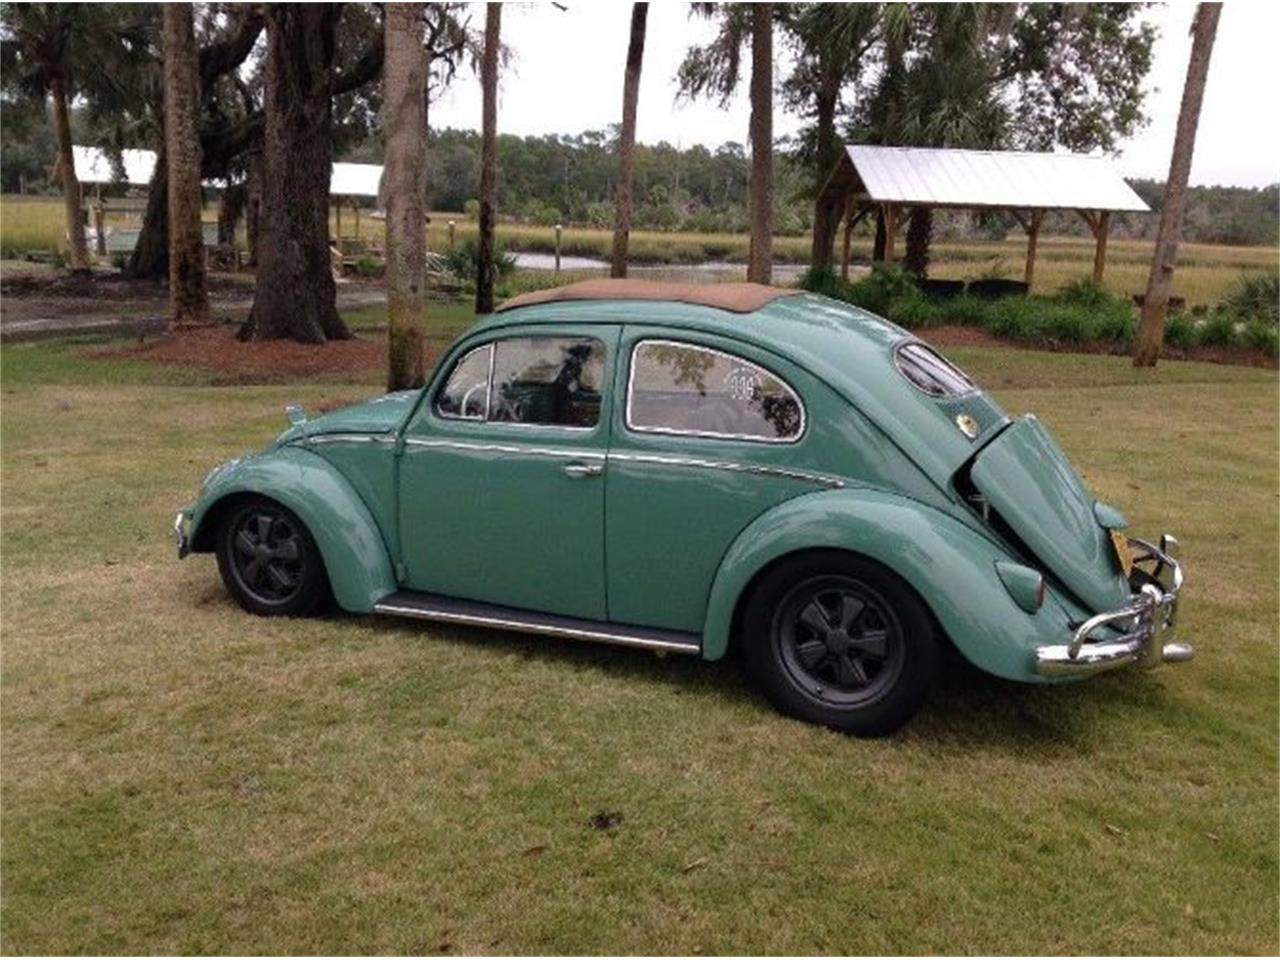 Large Picture of 1956 Volkswagen Beetle located in Michigan - $25,995.00 - P201